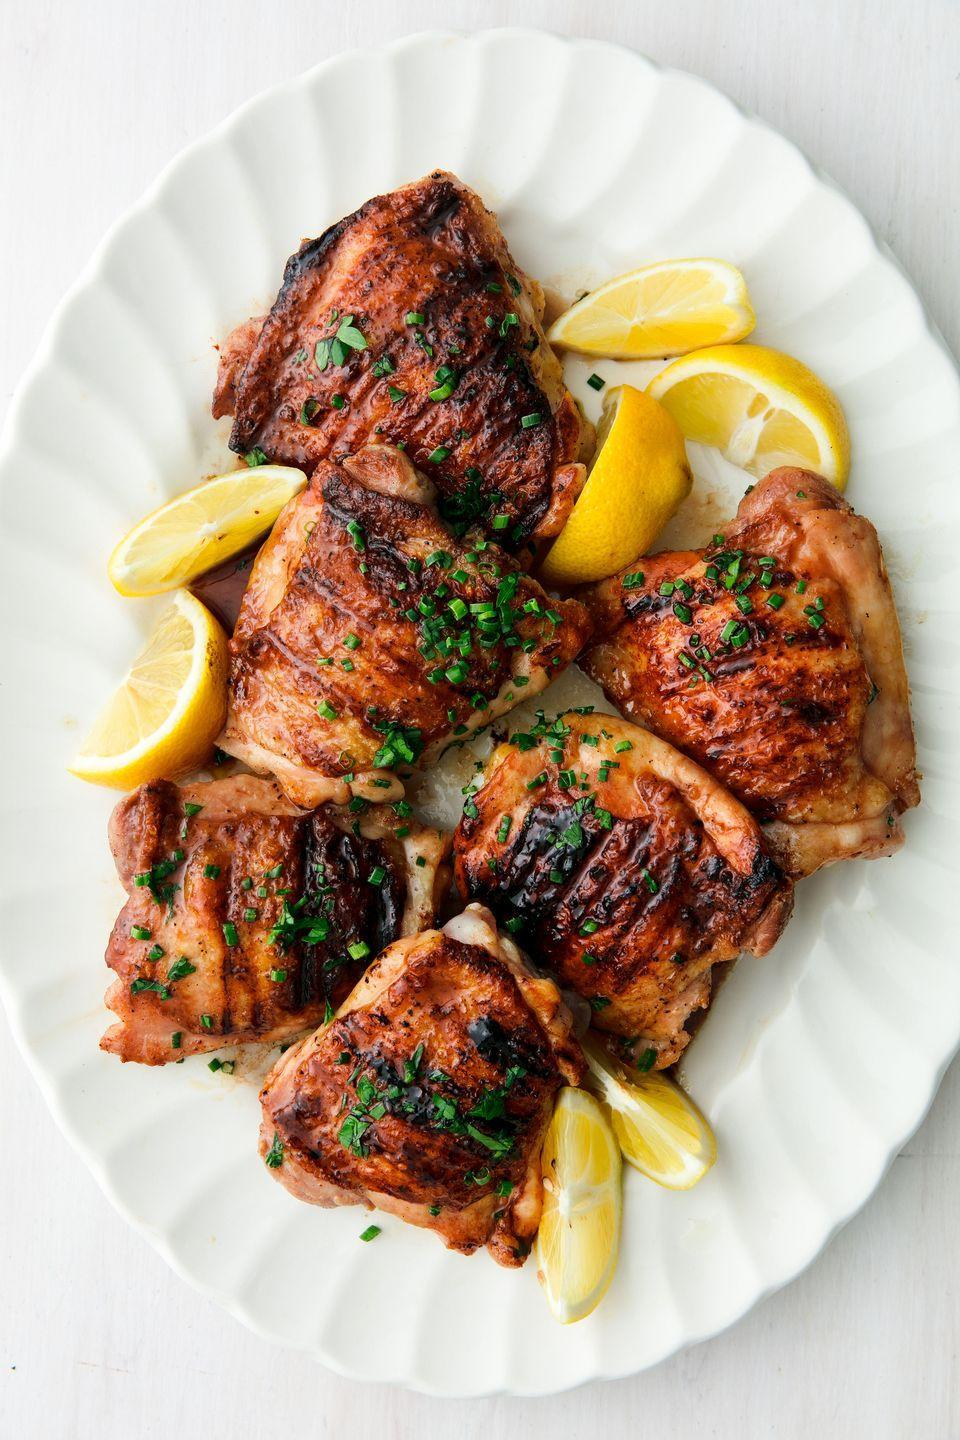 """<p>Can't go wrong with honey balsamic. </p><p>Get the recipe from <a href=""""https://www.delish.com/cooking/recipe-ideas/a22022842/best-grilled-chicken-thighs-recipe/"""" rel=""""nofollow noopener"""" target=""""_blank"""" data-ylk=""""slk:Delish."""" class=""""link rapid-noclick-resp"""">Delish. </a></p><p><a class=""""link rapid-noclick-resp"""" href=""""https://www.amazon.com/Lodge-LPGI3-Reversible-Griddle-10-44-inch/dp/B00008GKDQ?tag=syn-yahoo-20&ascsubtag=%5Bartid%7C1782.g.2180%5Bsrc%7Cyahoo-us"""" rel=""""nofollow noopener"""" target=""""_blank"""" data-ylk=""""slk:BUY NOW"""">BUY NOW</a> <strong><em>Lodge Cast Iron Reversible Grill/Griddle, $45, amazon.com</em></strong><br></p>"""